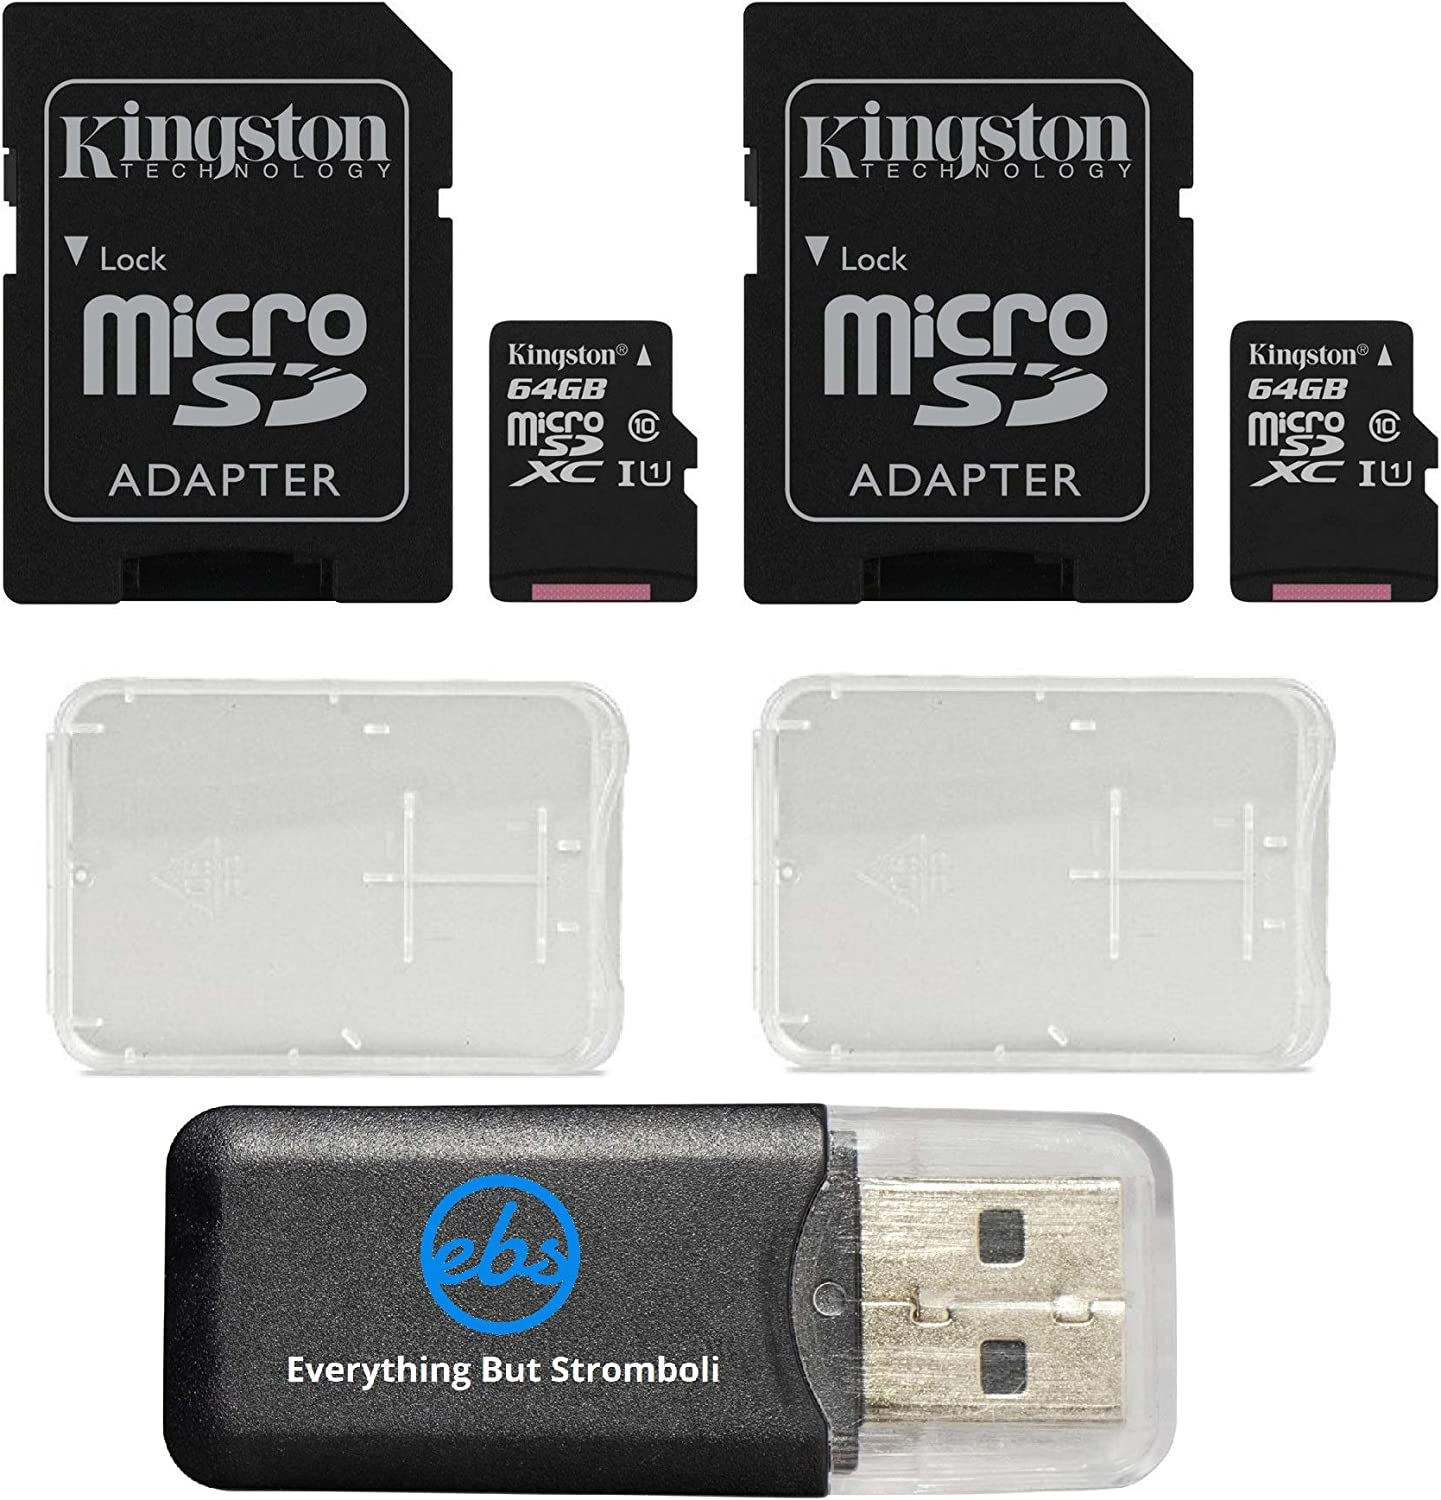 Kingston Canvas Select (2 Pack Bundle) microSD Class 10 Memory Card UHS-I 80MB/s R Flash with Adapter SDCS/64GB and (2) Plastic Jewel Cases and (1) Everything But Stromboli (TM) Card Reader